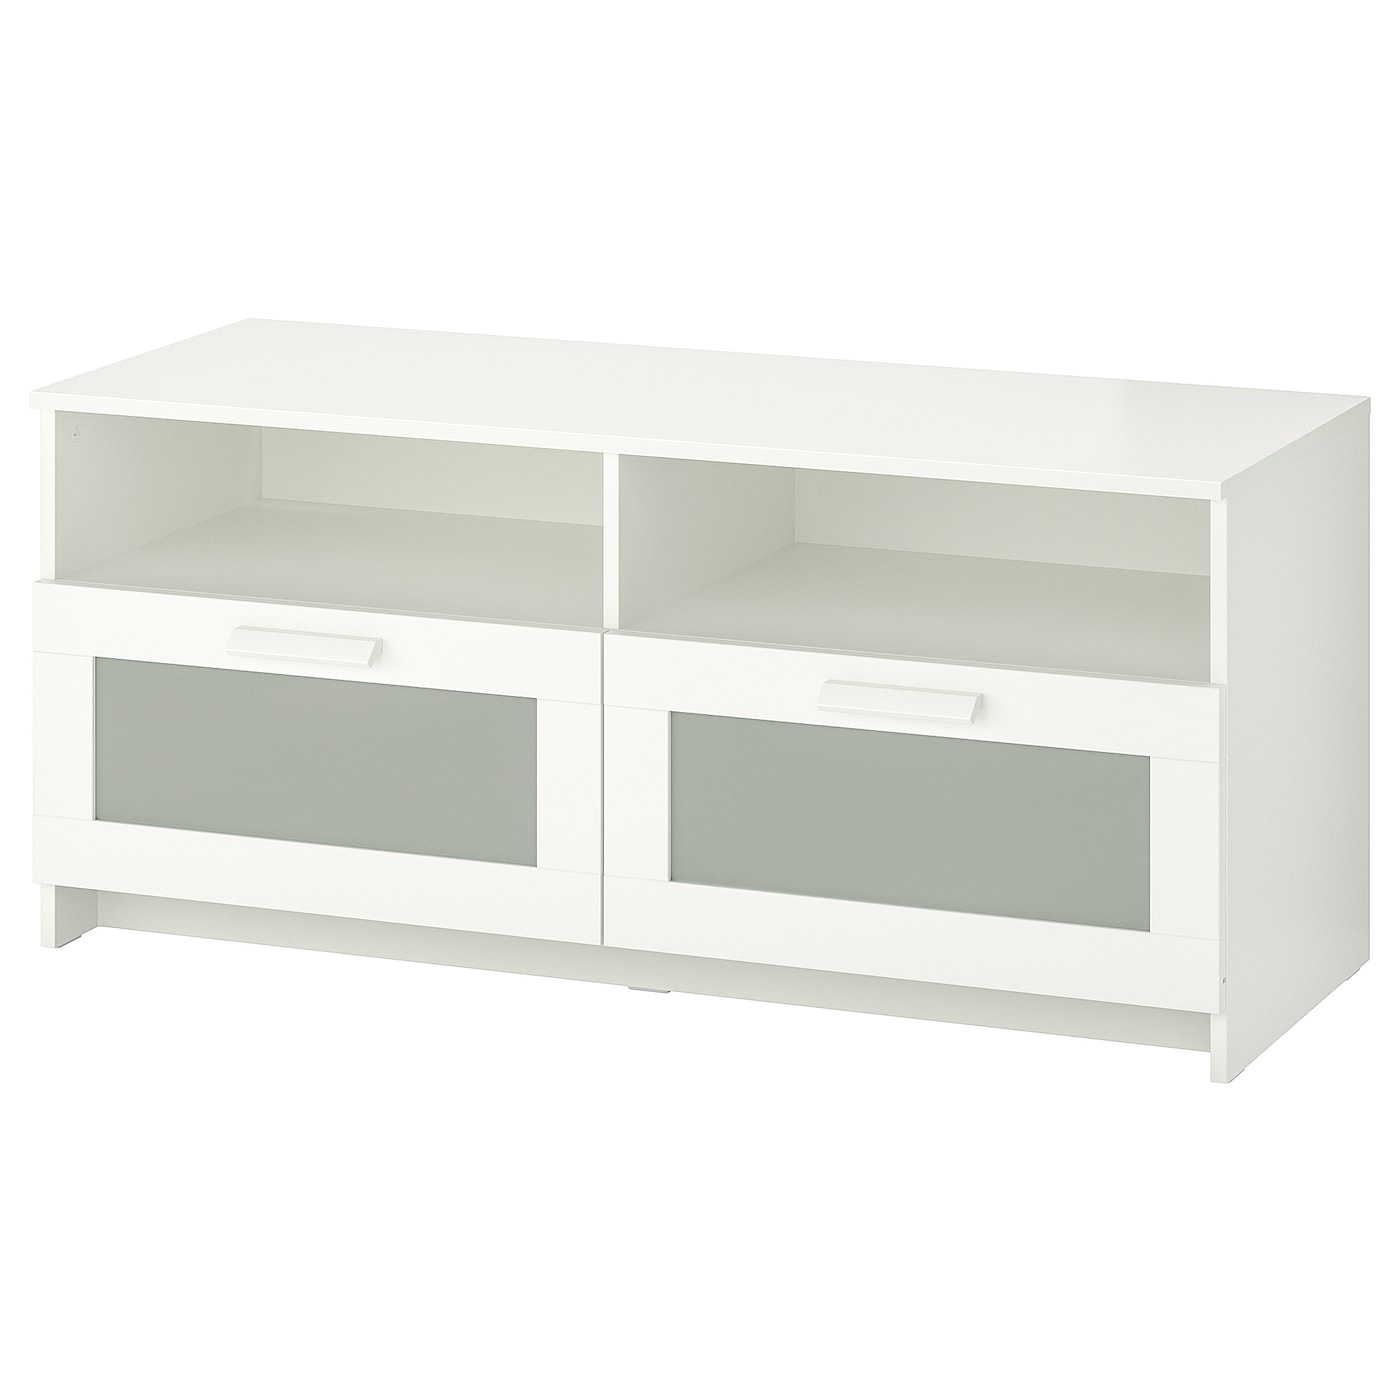 Brimnes Tv Unit White 47 1 4x16